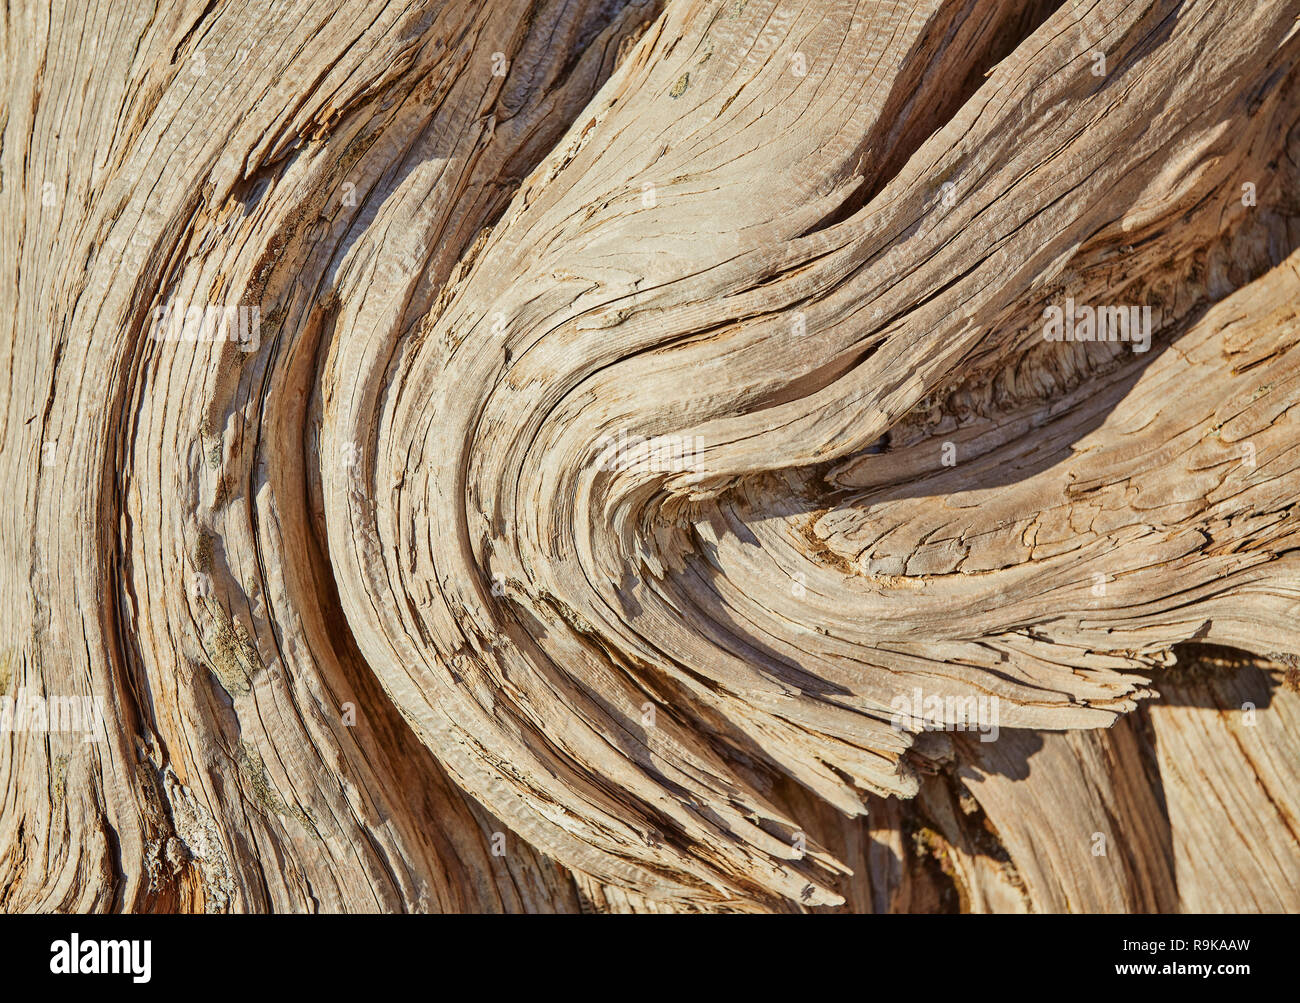 Elm Wood Log Stock Photos Elm Wood Log Stock Images Alamy